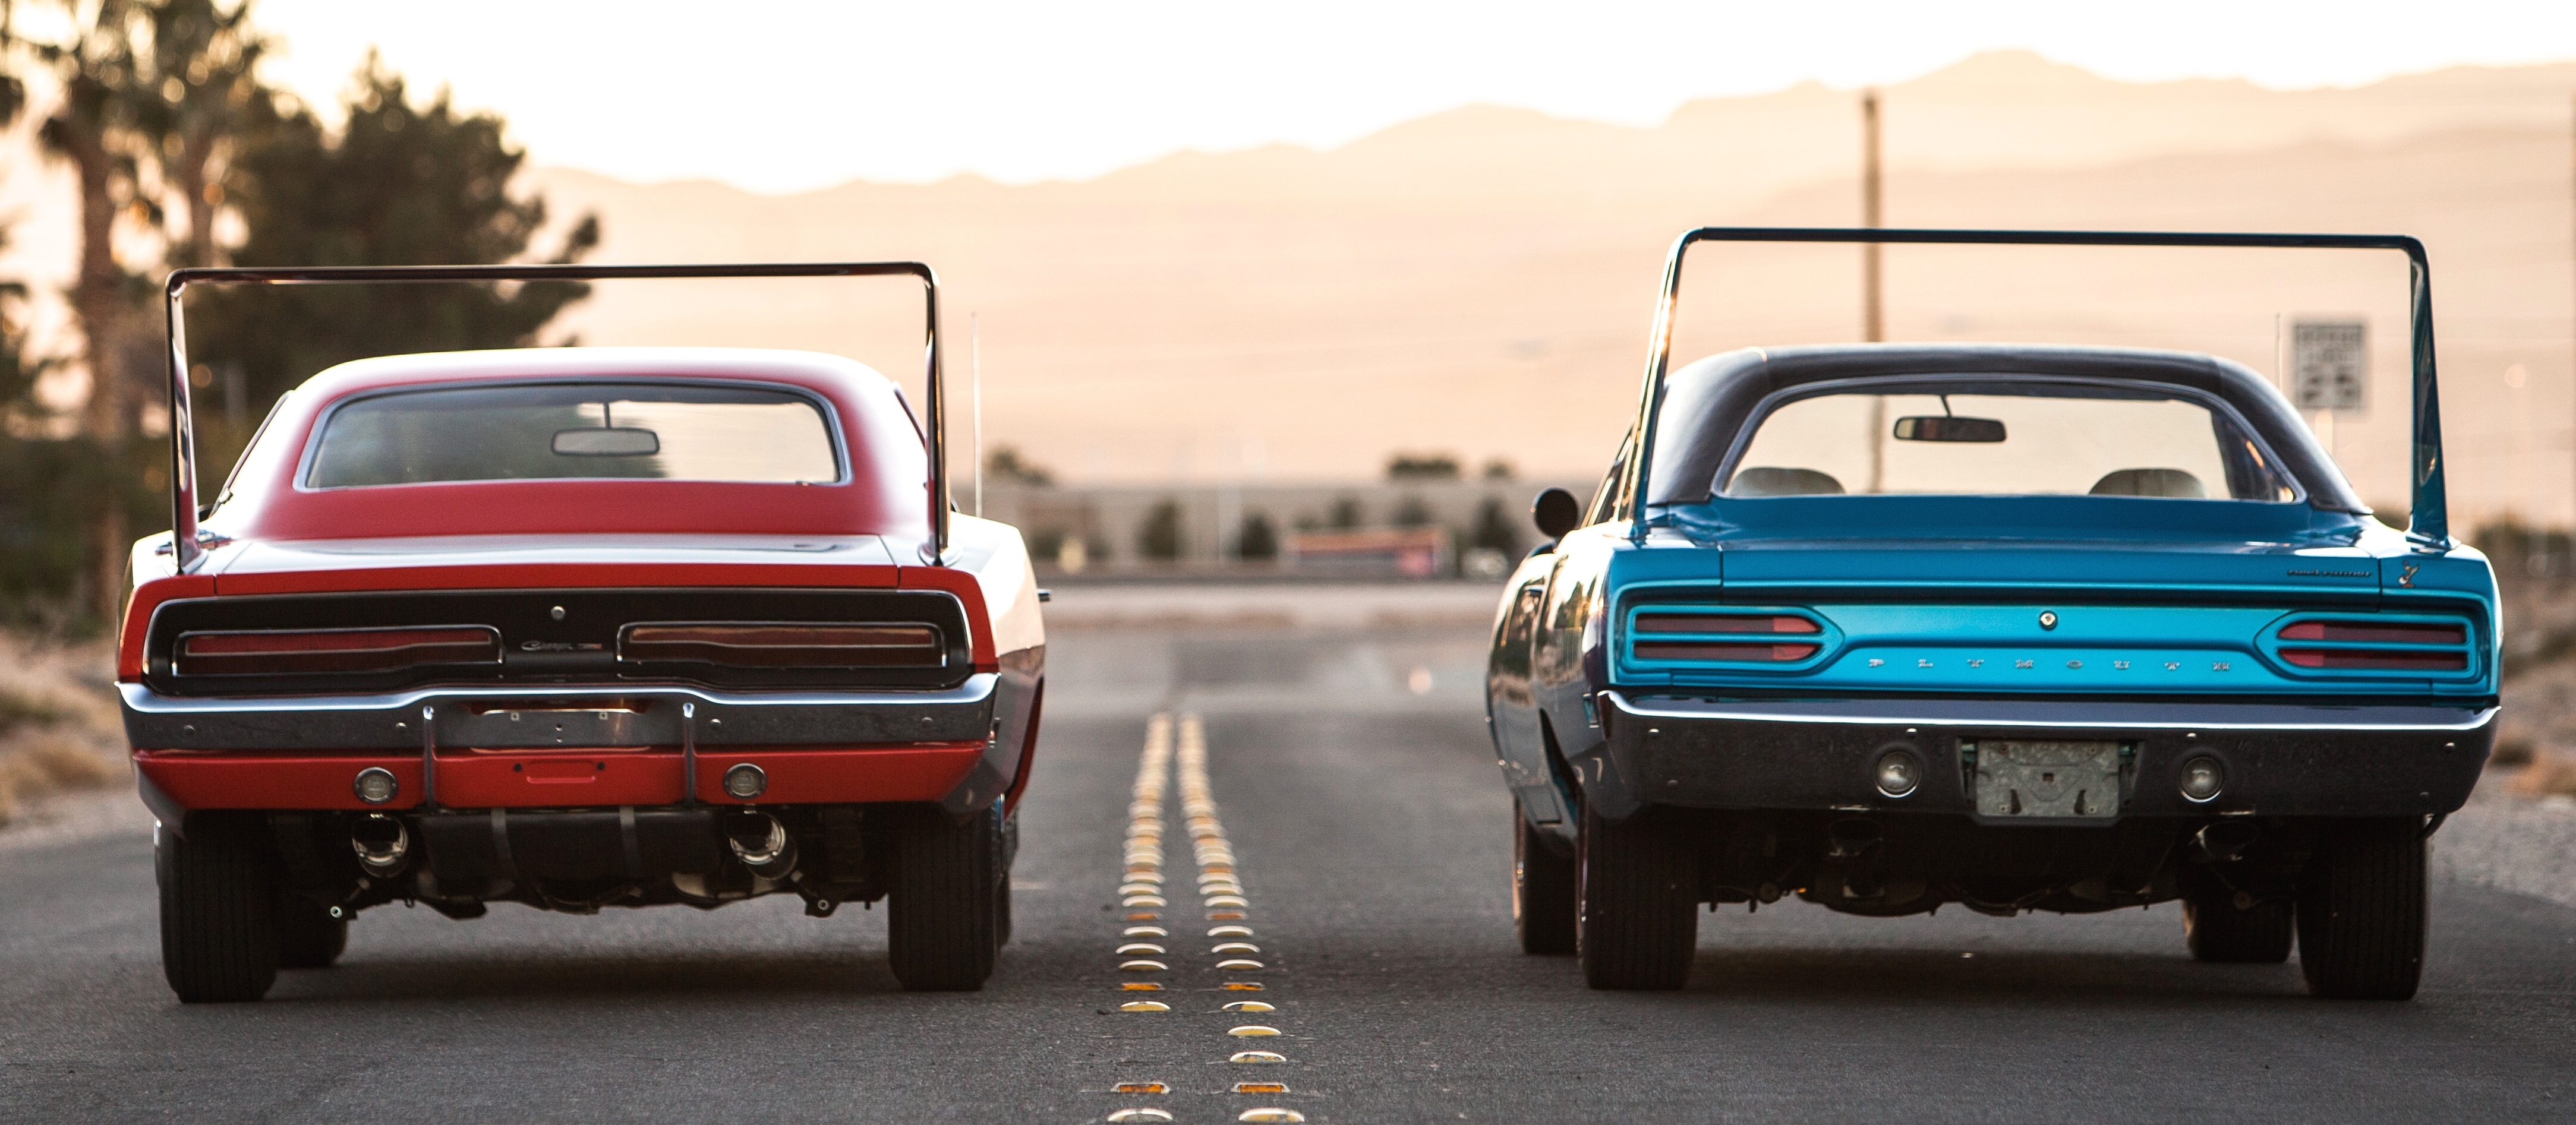 Mecum hopes to continue success with collection sales at its ...